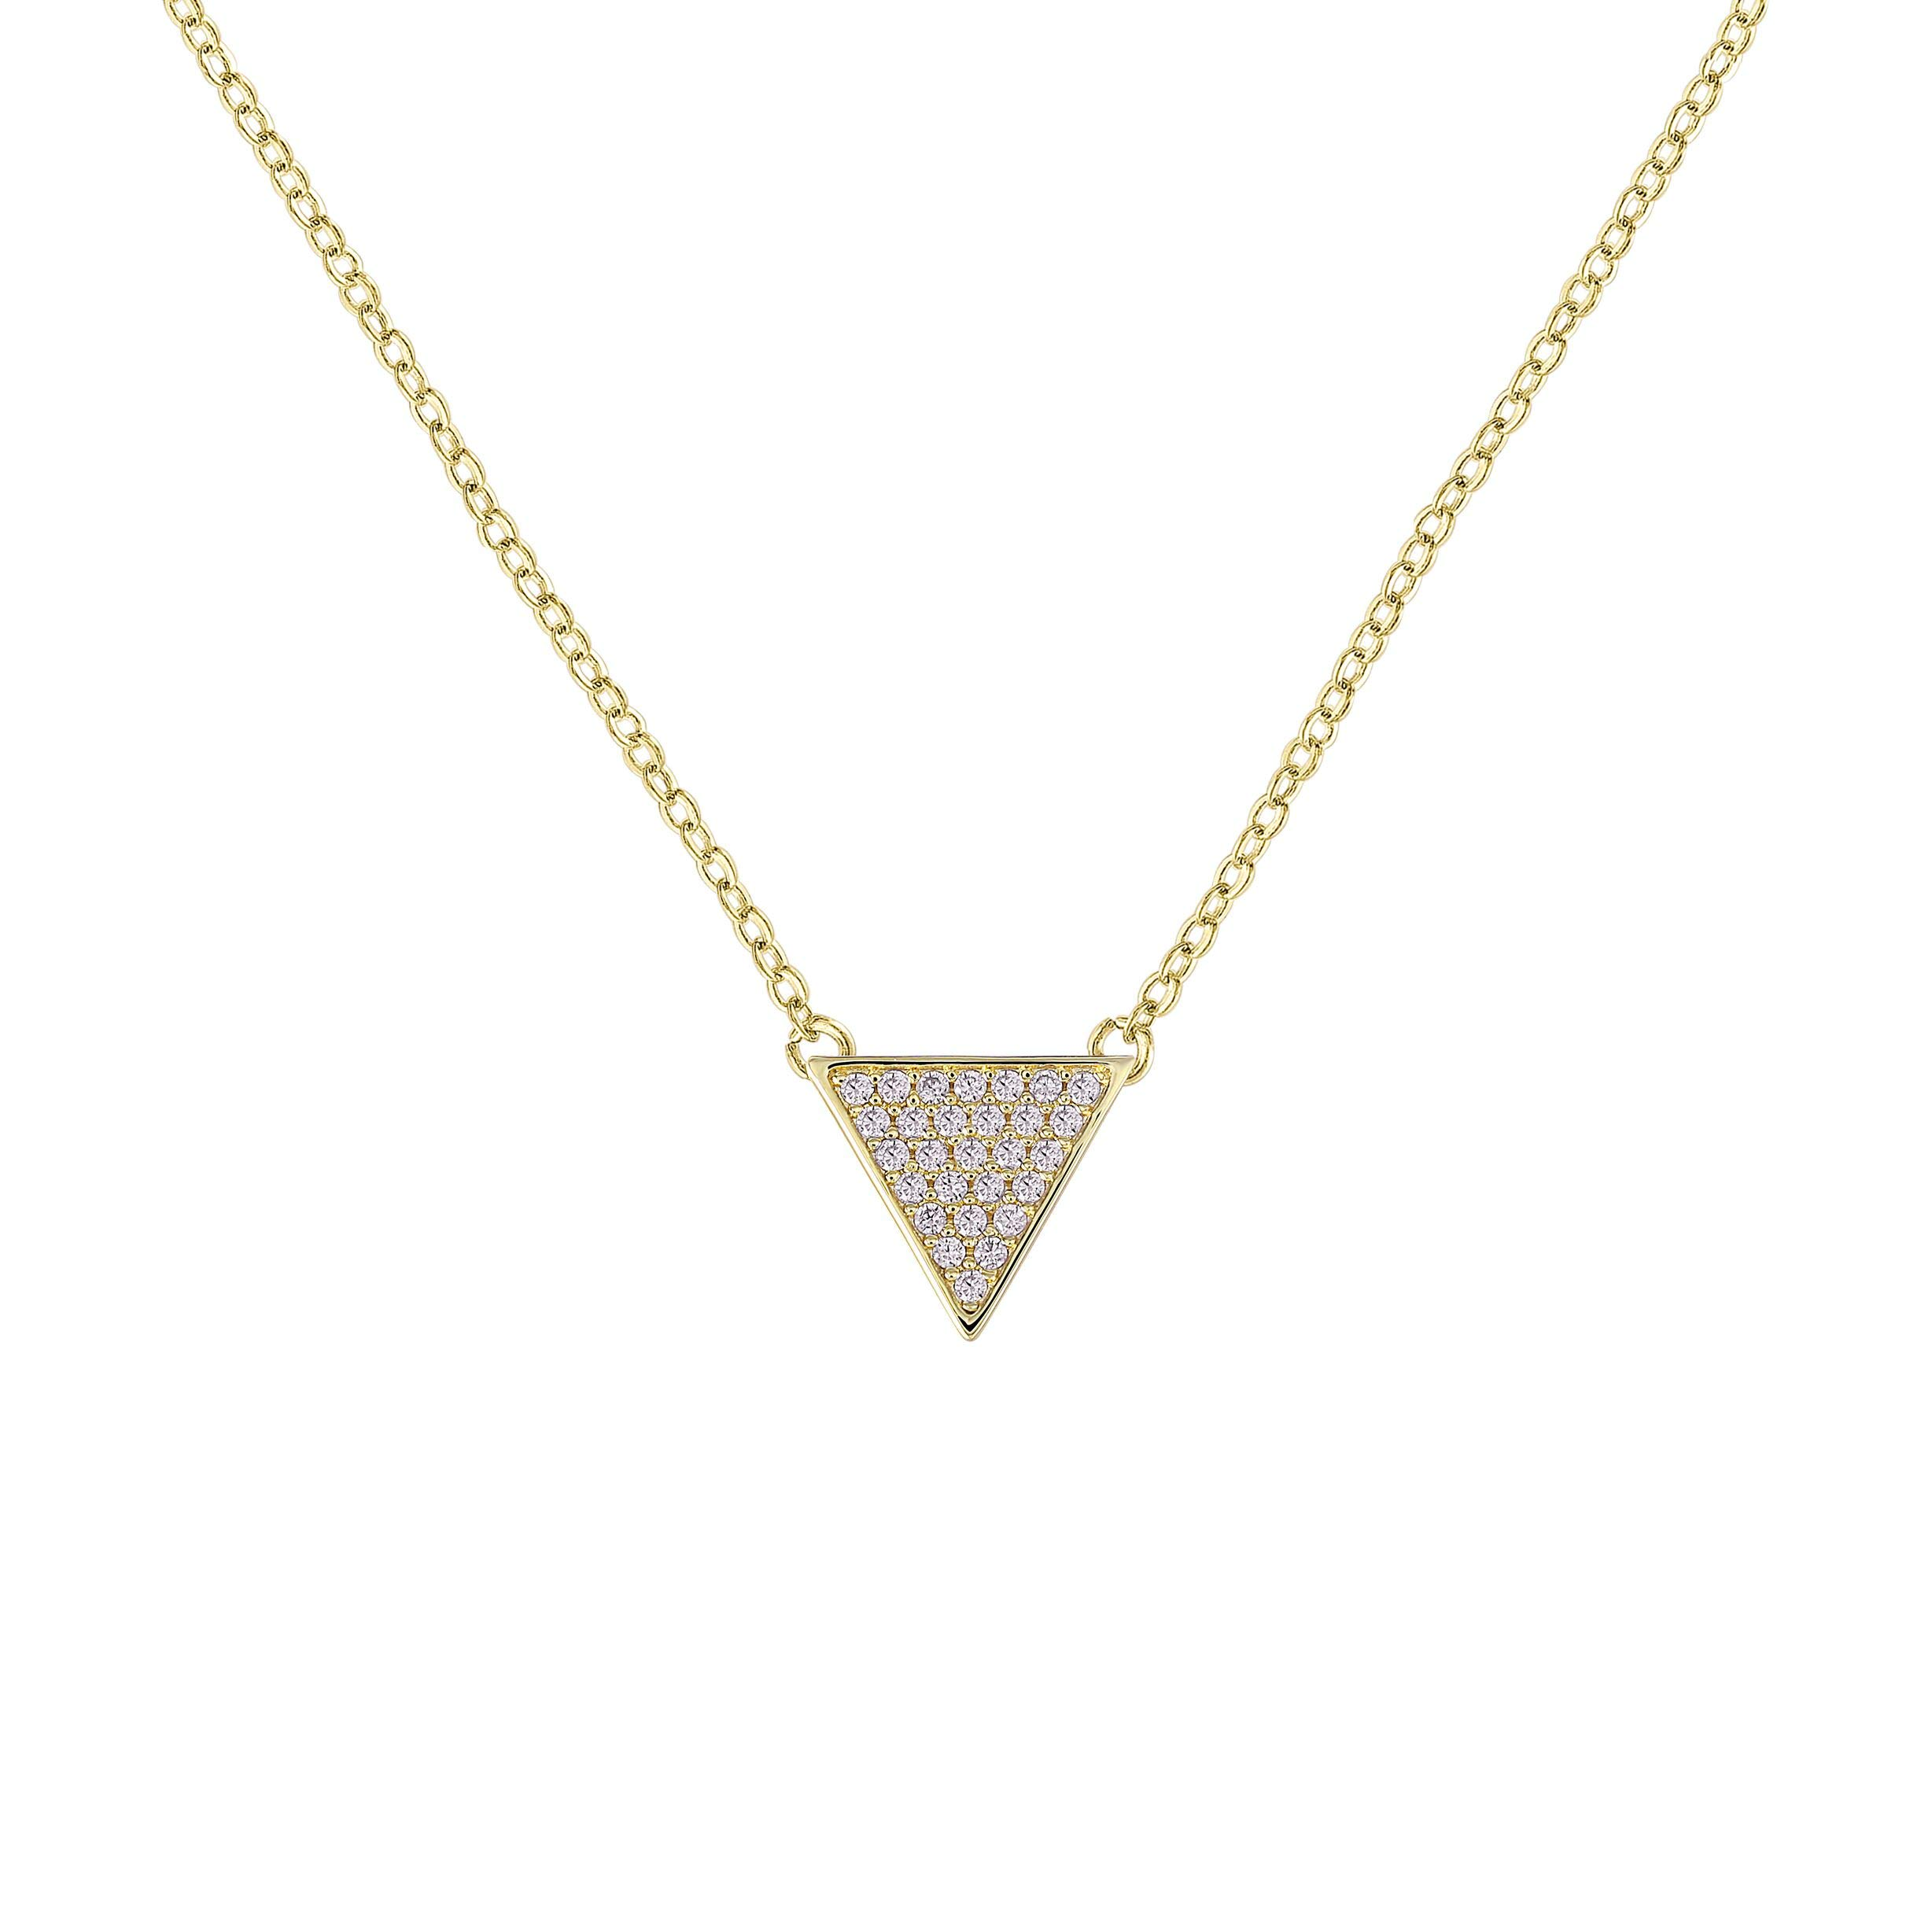 QUINBY Triangle Necklace Rose Gold-Plated Pendant with Pave Cubic Zirconia Crystal